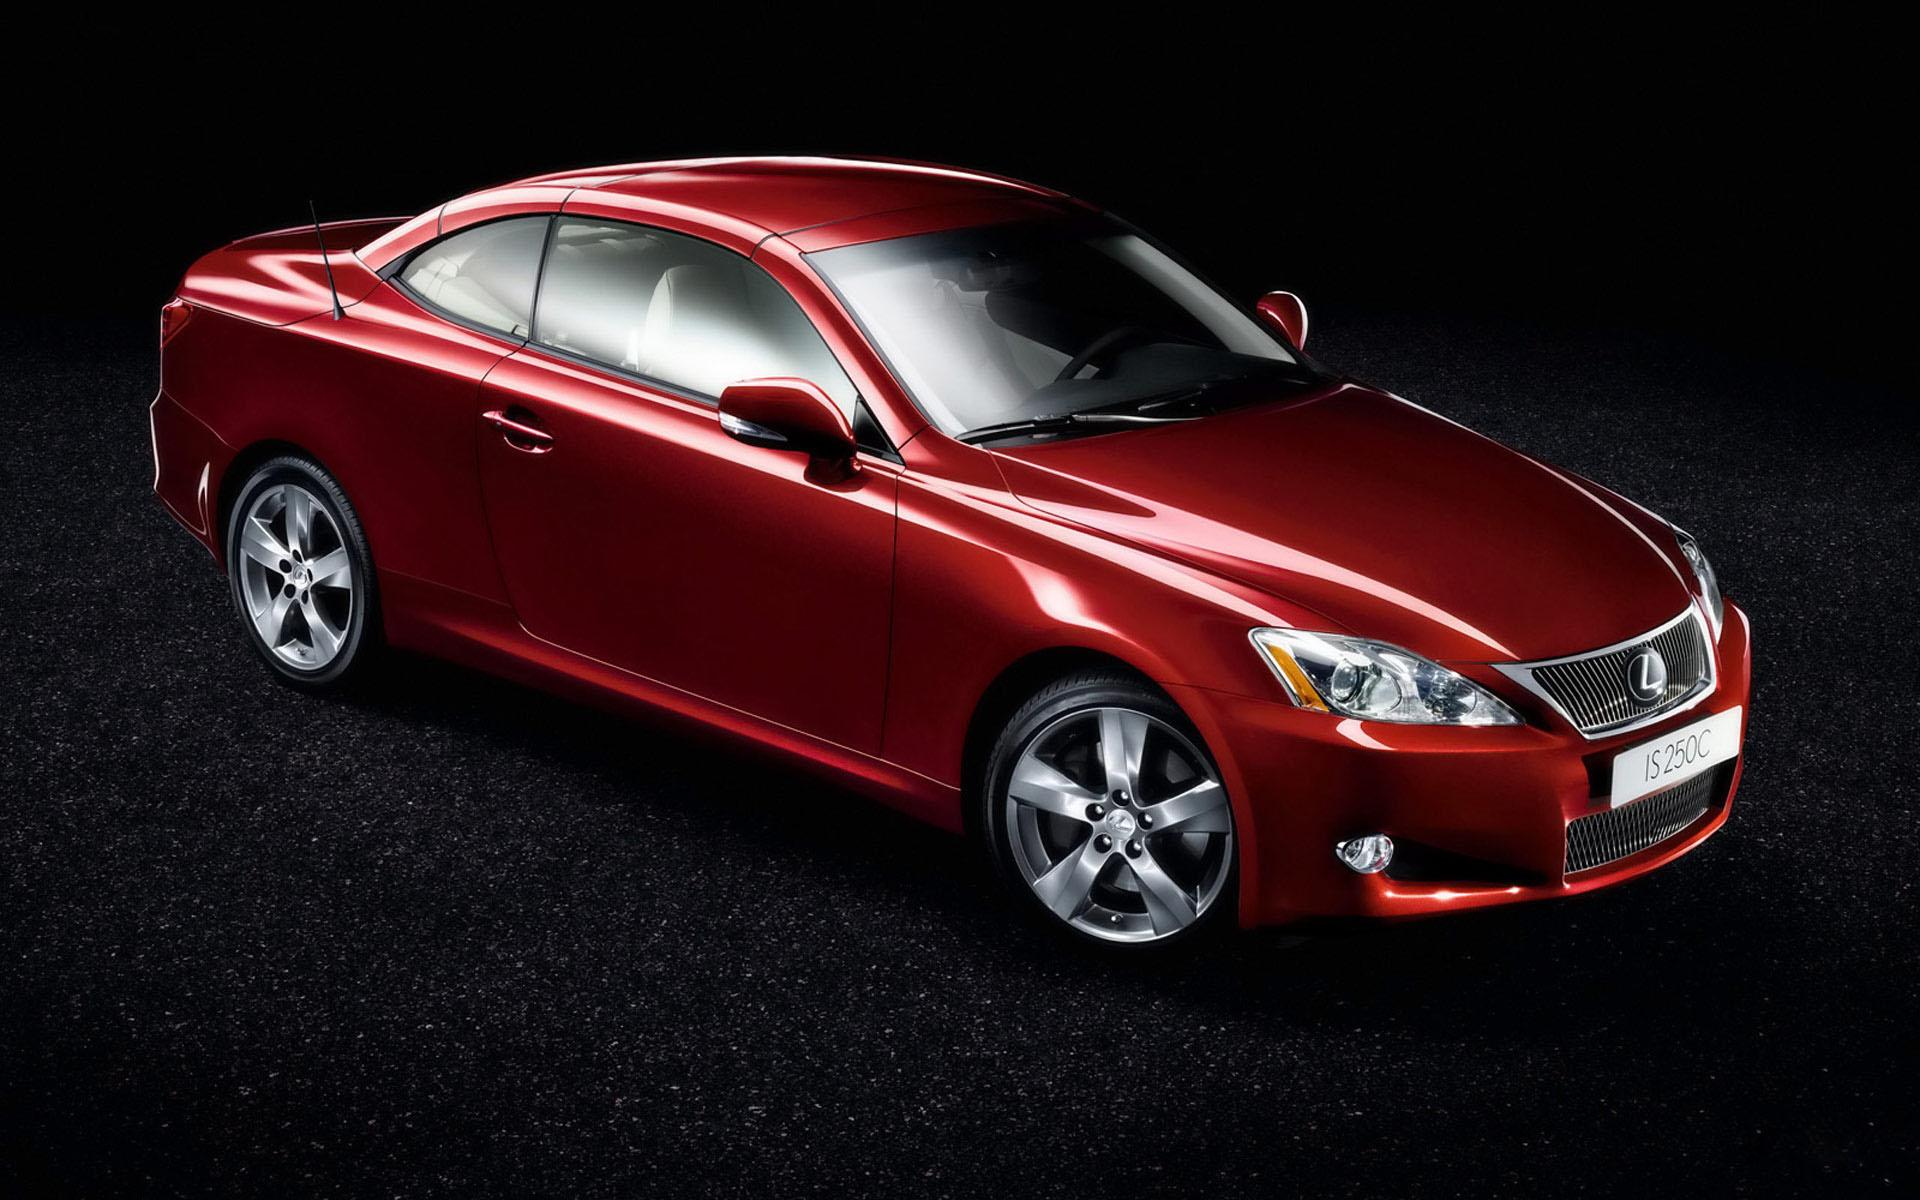 Lexus IS 250 C 1920x1200